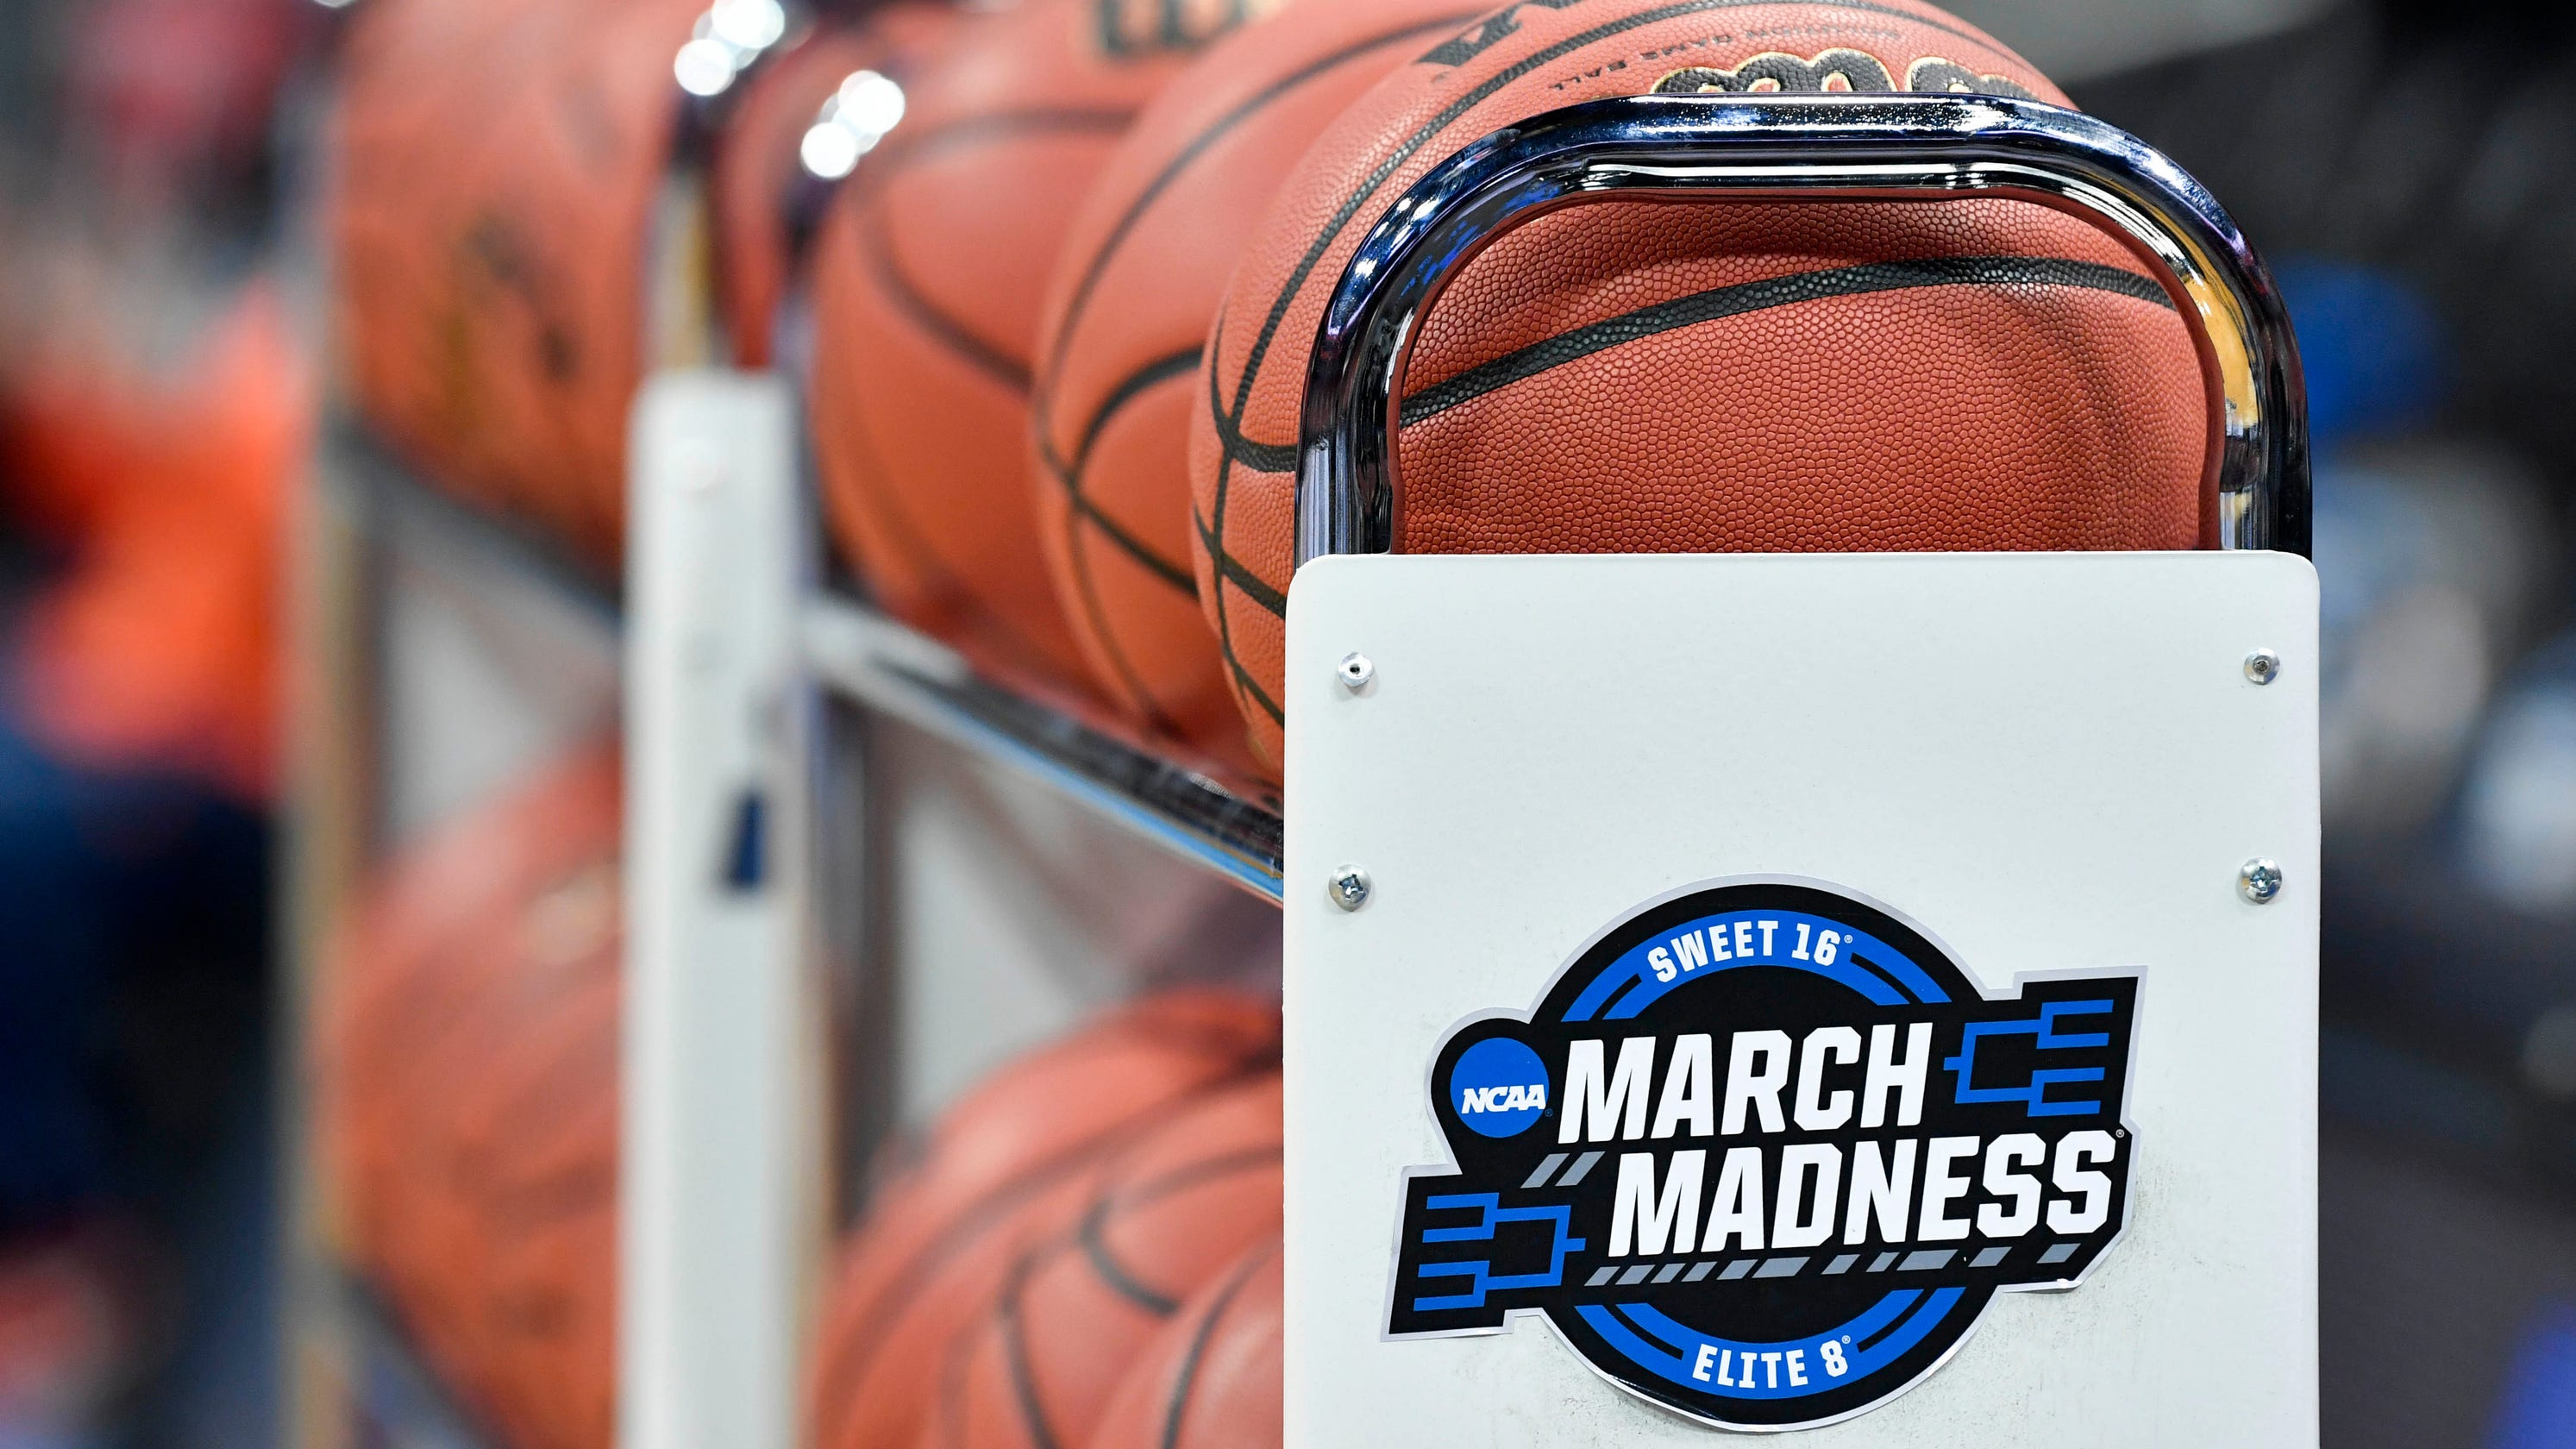 Sports books in Las Vegas are getting creative to offset March Madness betting losses thumbnail